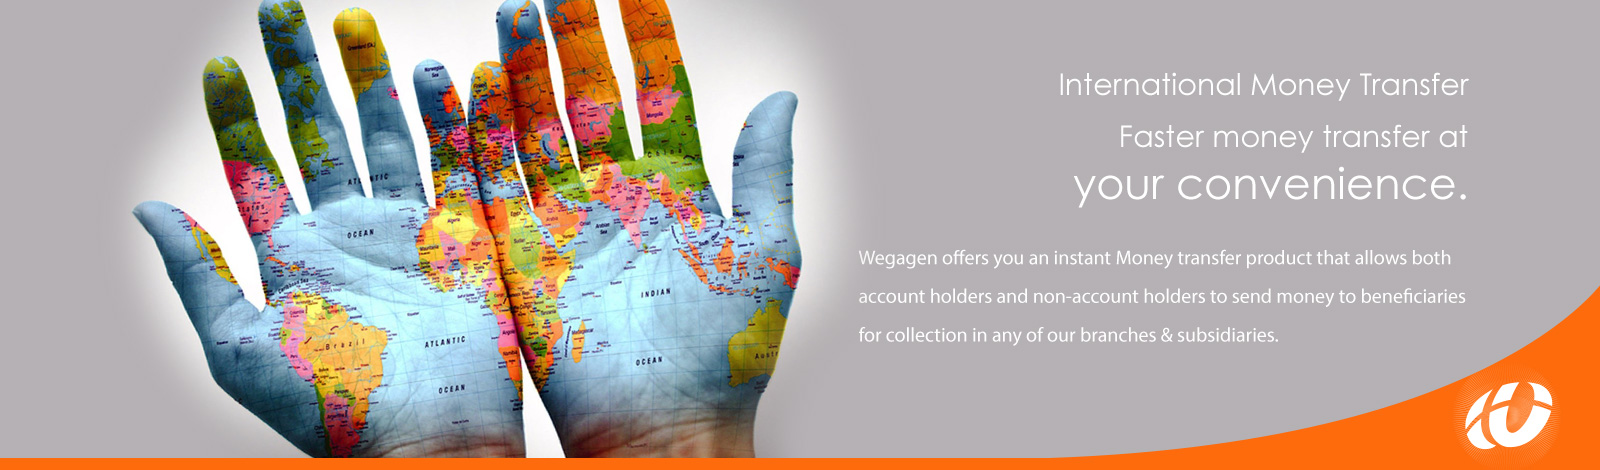 internationalbanking-wegagen1.jpg